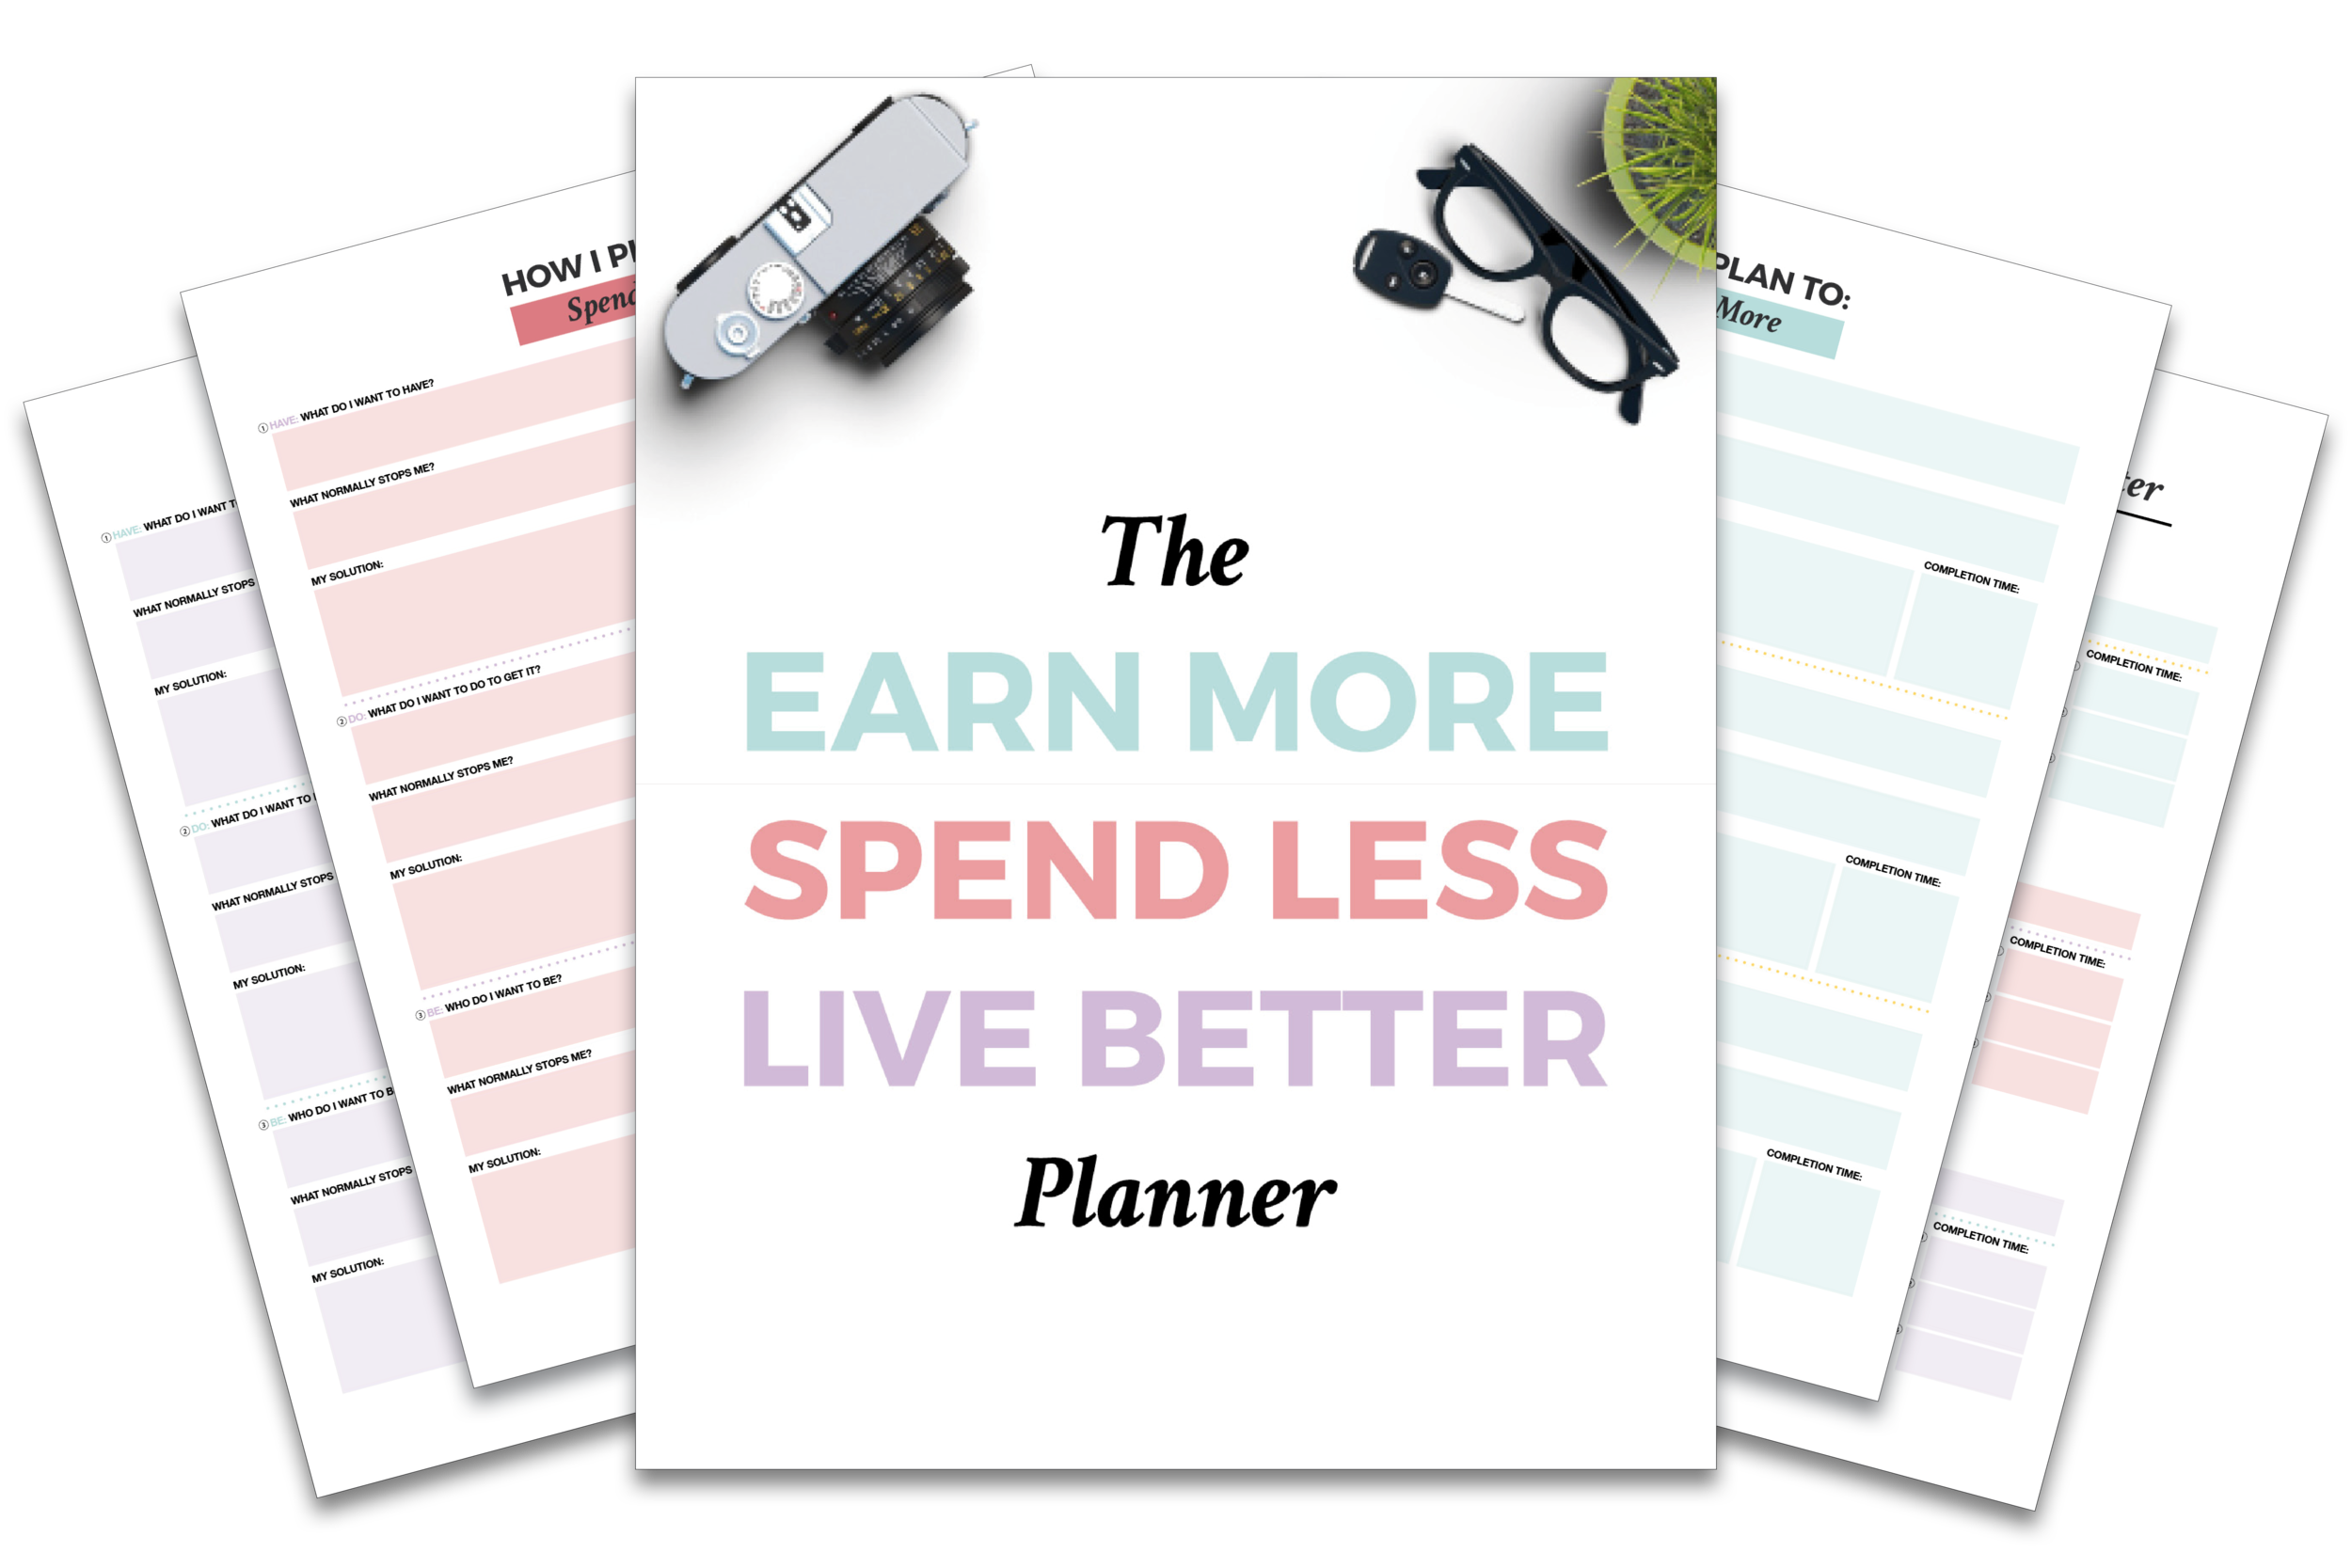 Ready to earn more through your blog and business, spend less while  implementing quality self care, and live better while growing everyday? Then read on, because this post is for you. | viaYuri.com + The FREE Earn More, Spend Less, Liver Better Planner | viaYuri.com